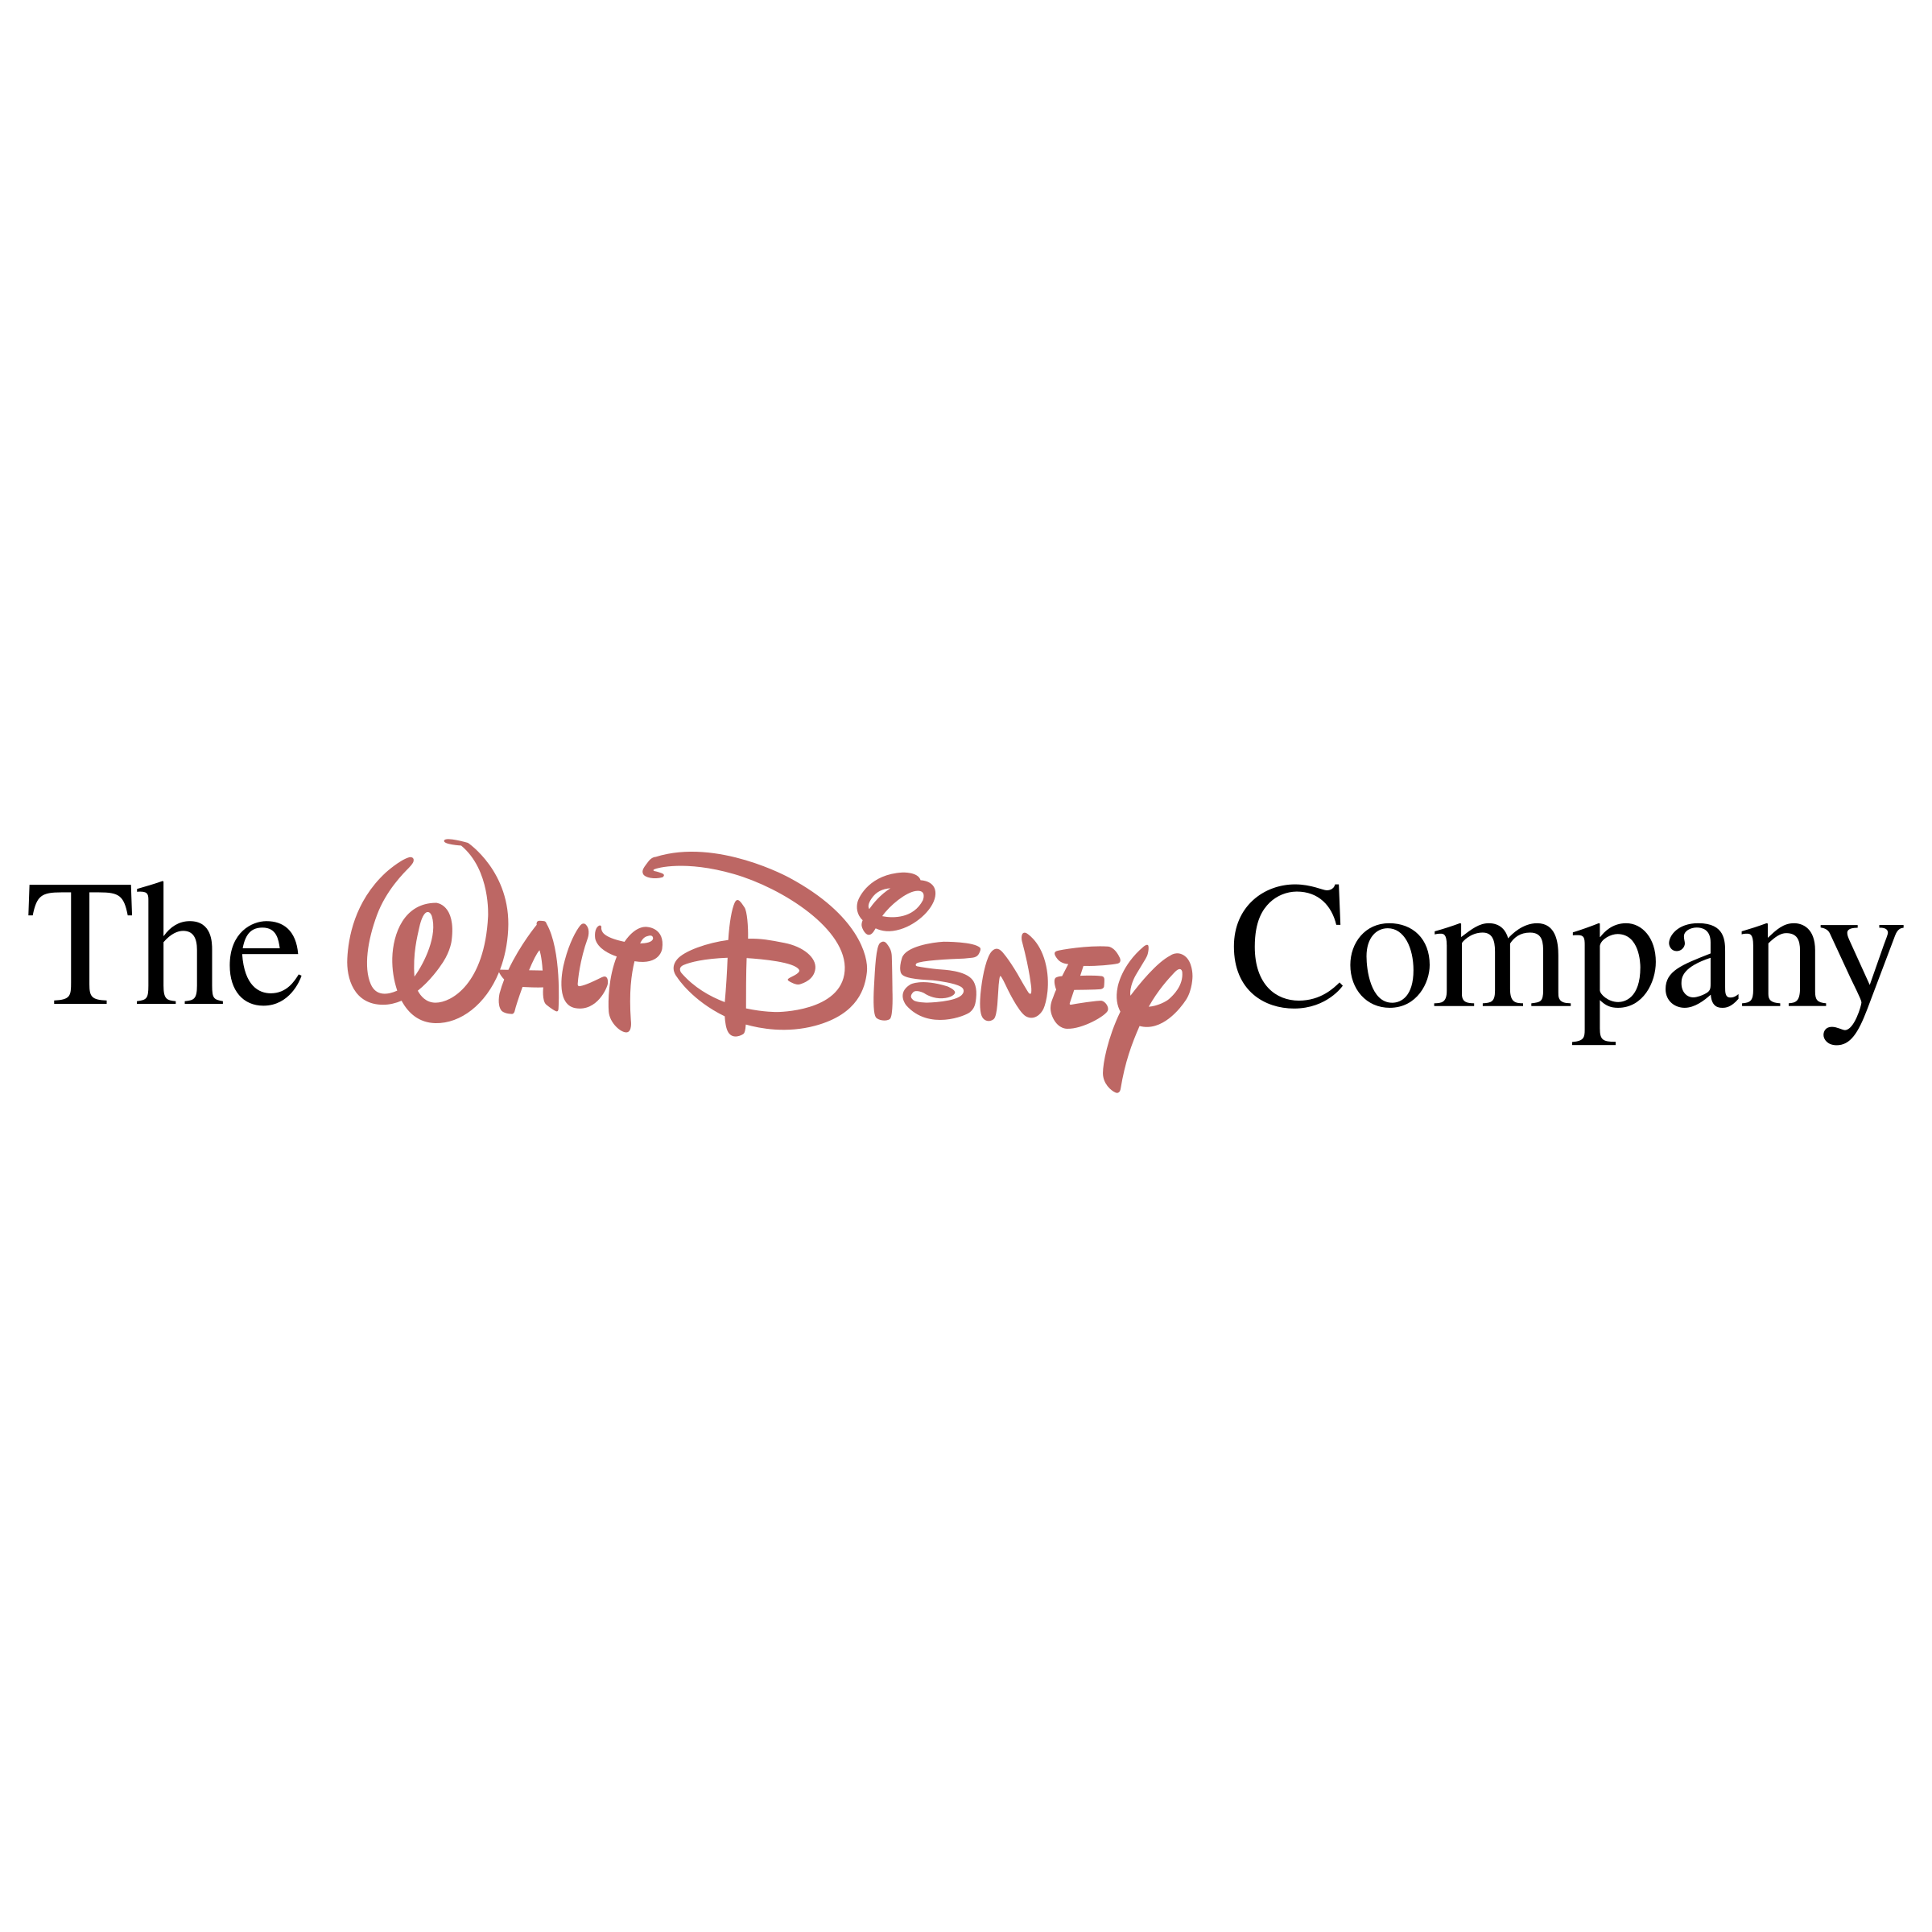 the walt disney company logo png transparent  #32531